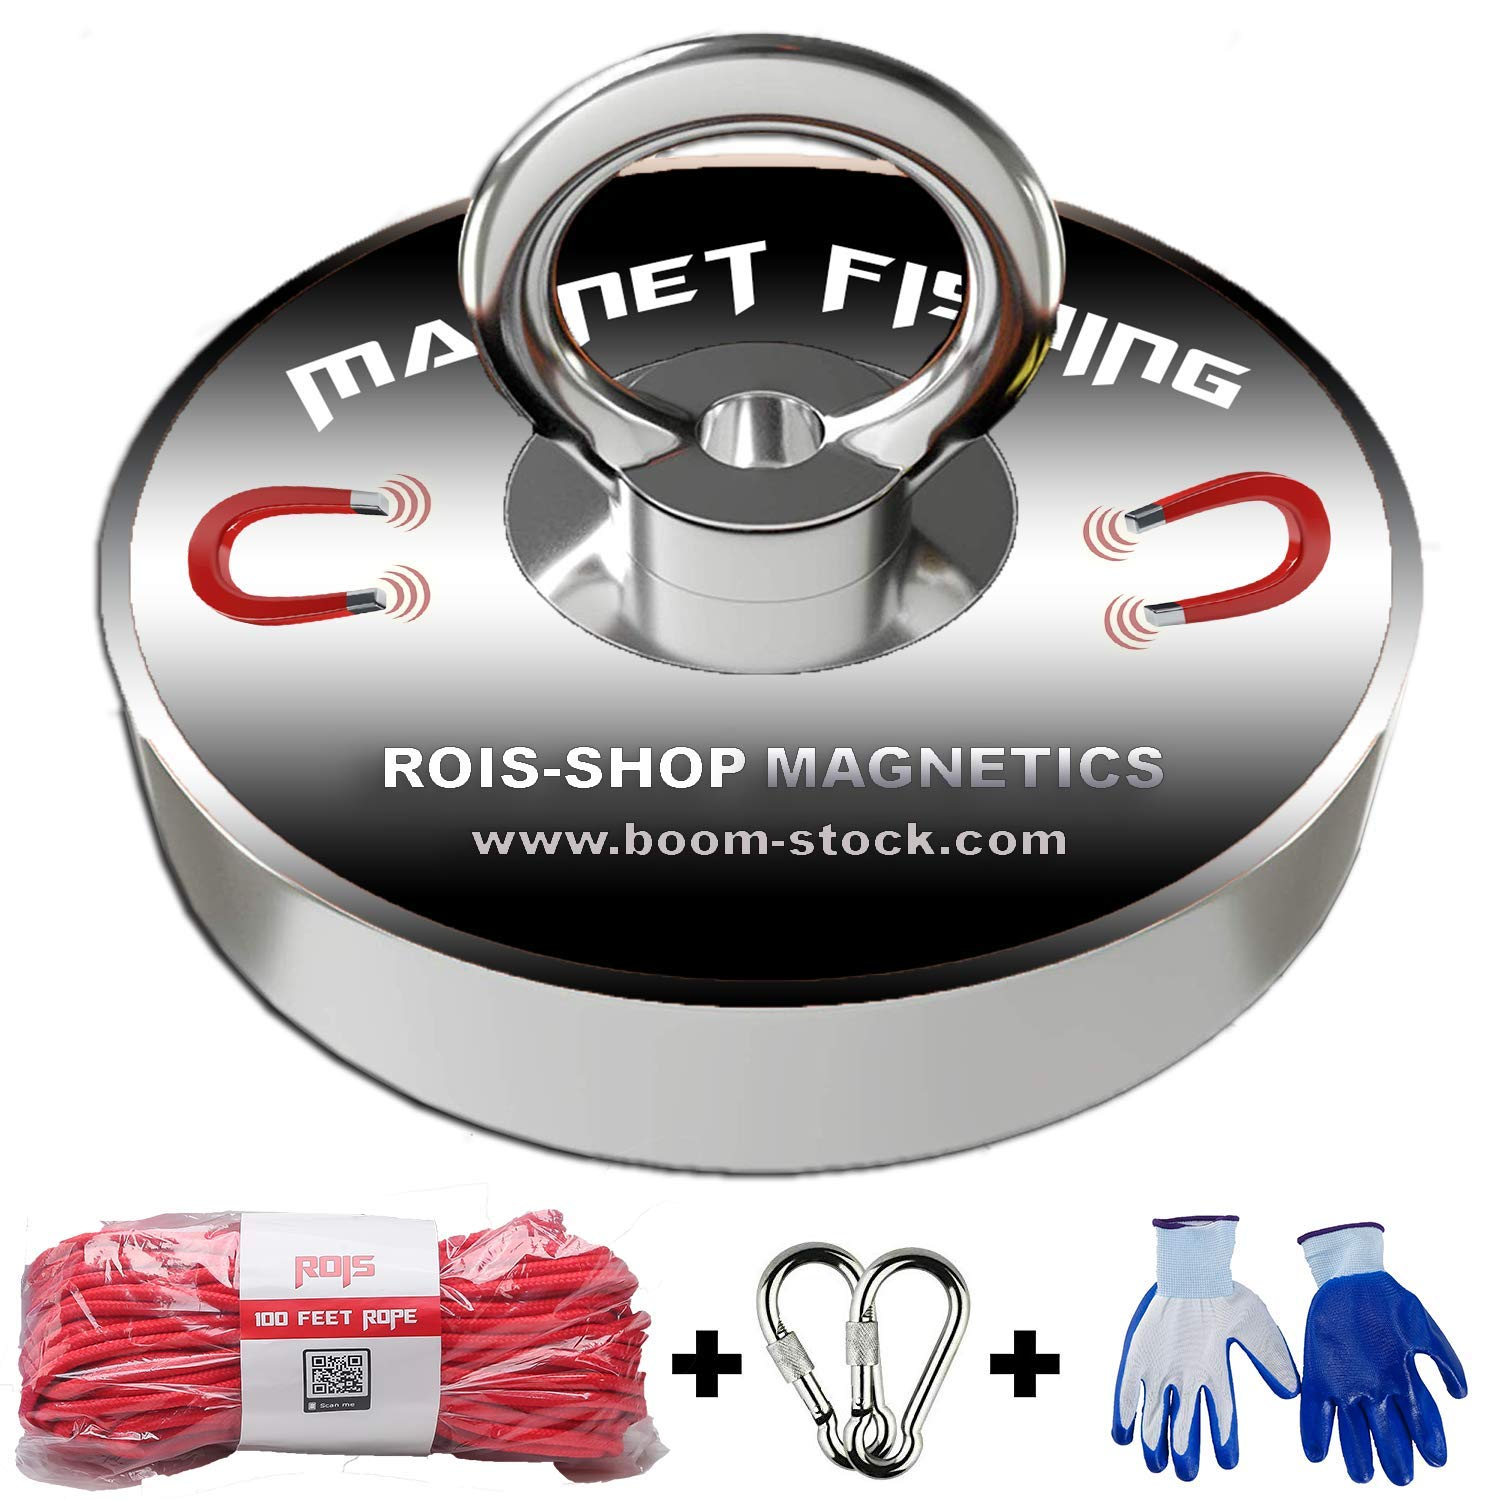 Super Strong Fishing Magnet 1200 Pound with Rope Kit and Protection Gloves | Rope Over 2000 Pound Strong | Magnet 544 Kilogams Pull | Neodymium Rare Earth Magnet 4.21 Inch(107mm) for Magnet Fishing by ROIS-SHOP